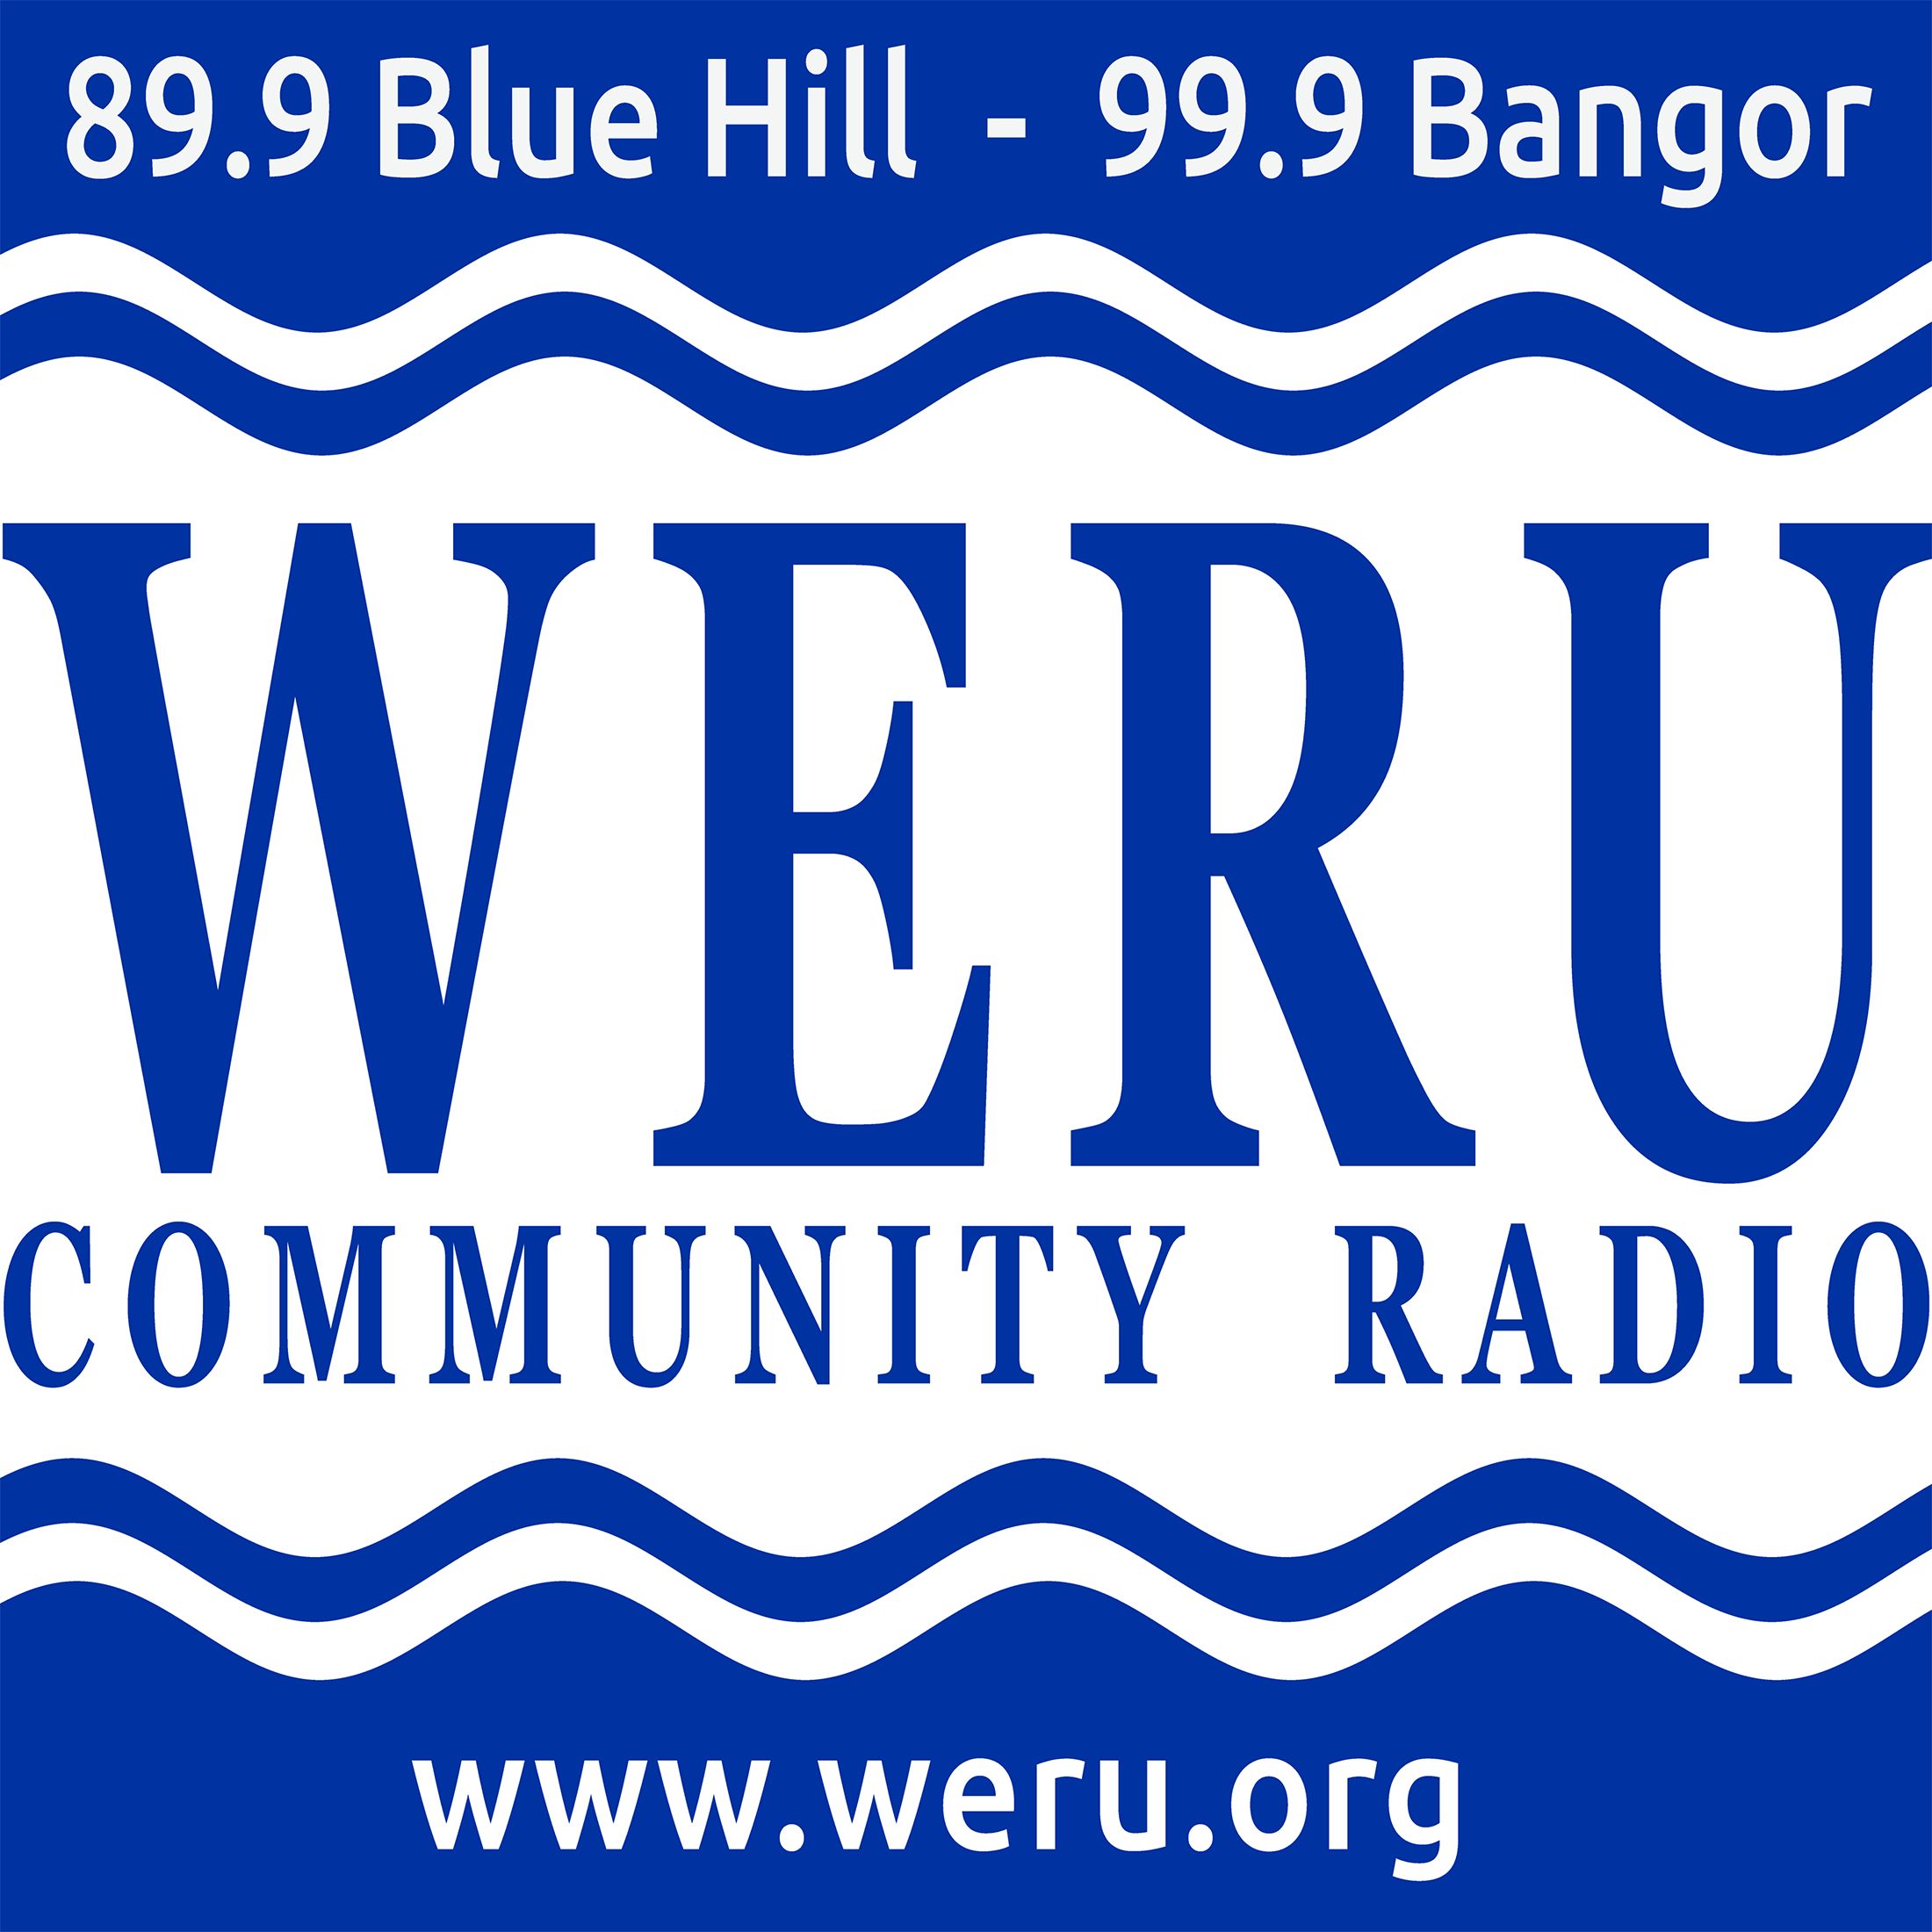 Bookworm – WERU 89.9 FM Blue Hill, Maine Local News and Public Affairs Archives